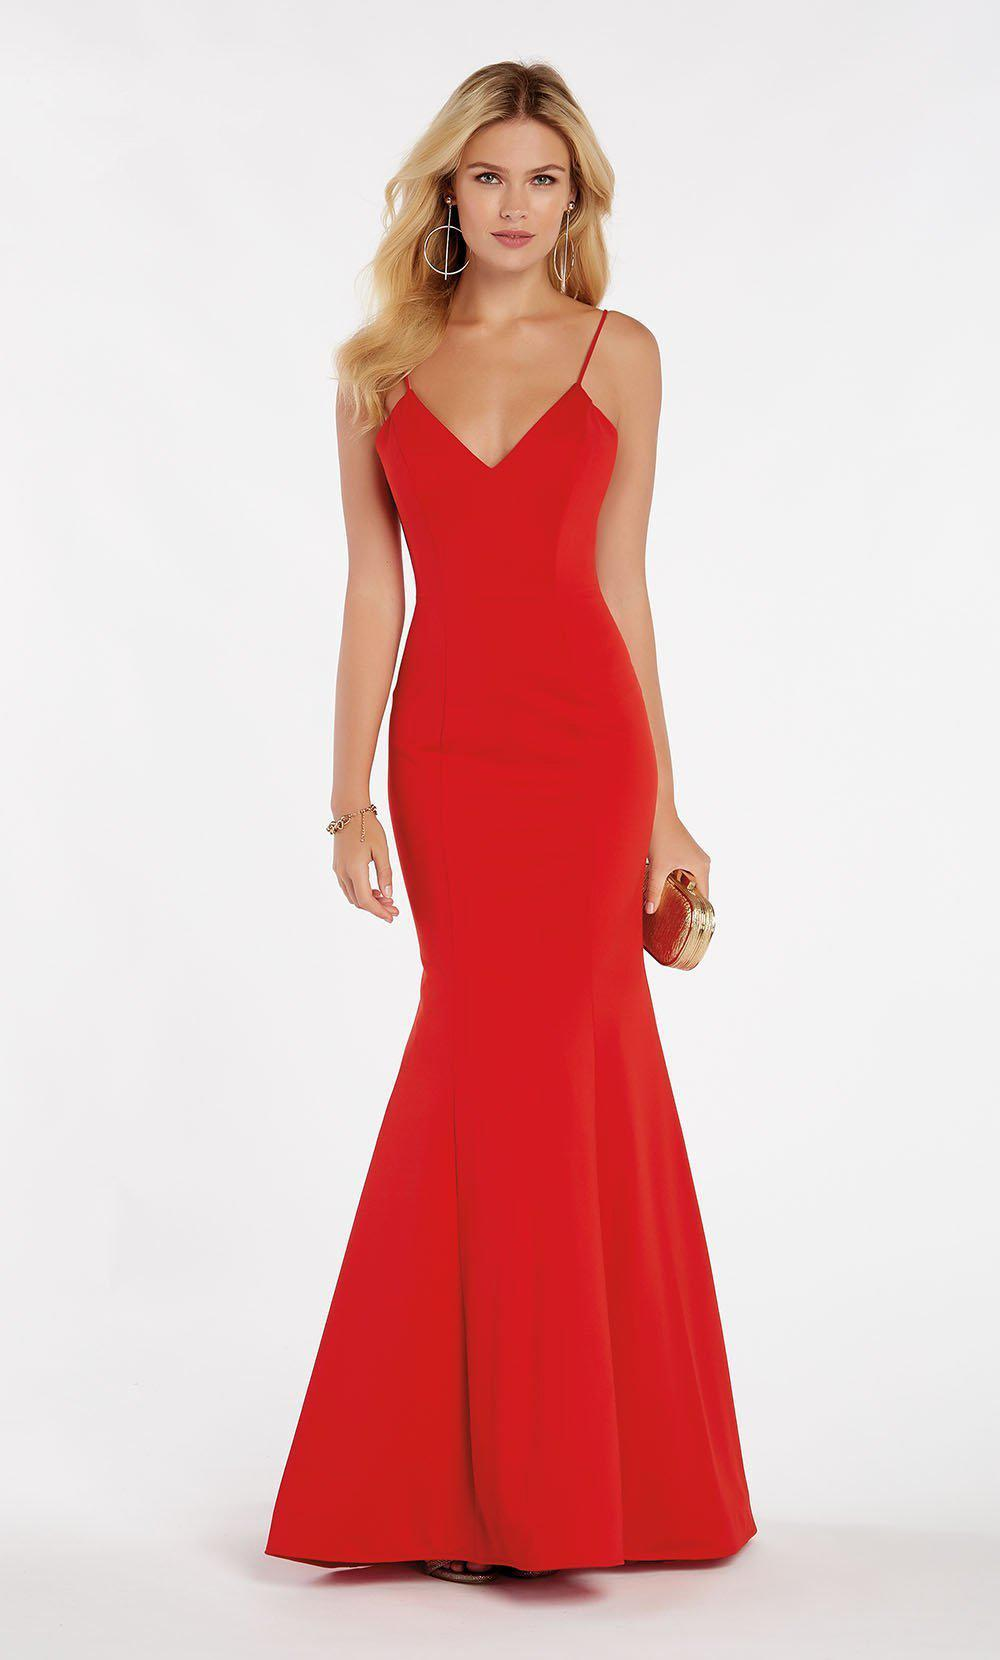 a5d5a6b41f30 Lyst - Alyce Paris 60293 Classy Sleeveless Jersey Mermaid Gown in Red